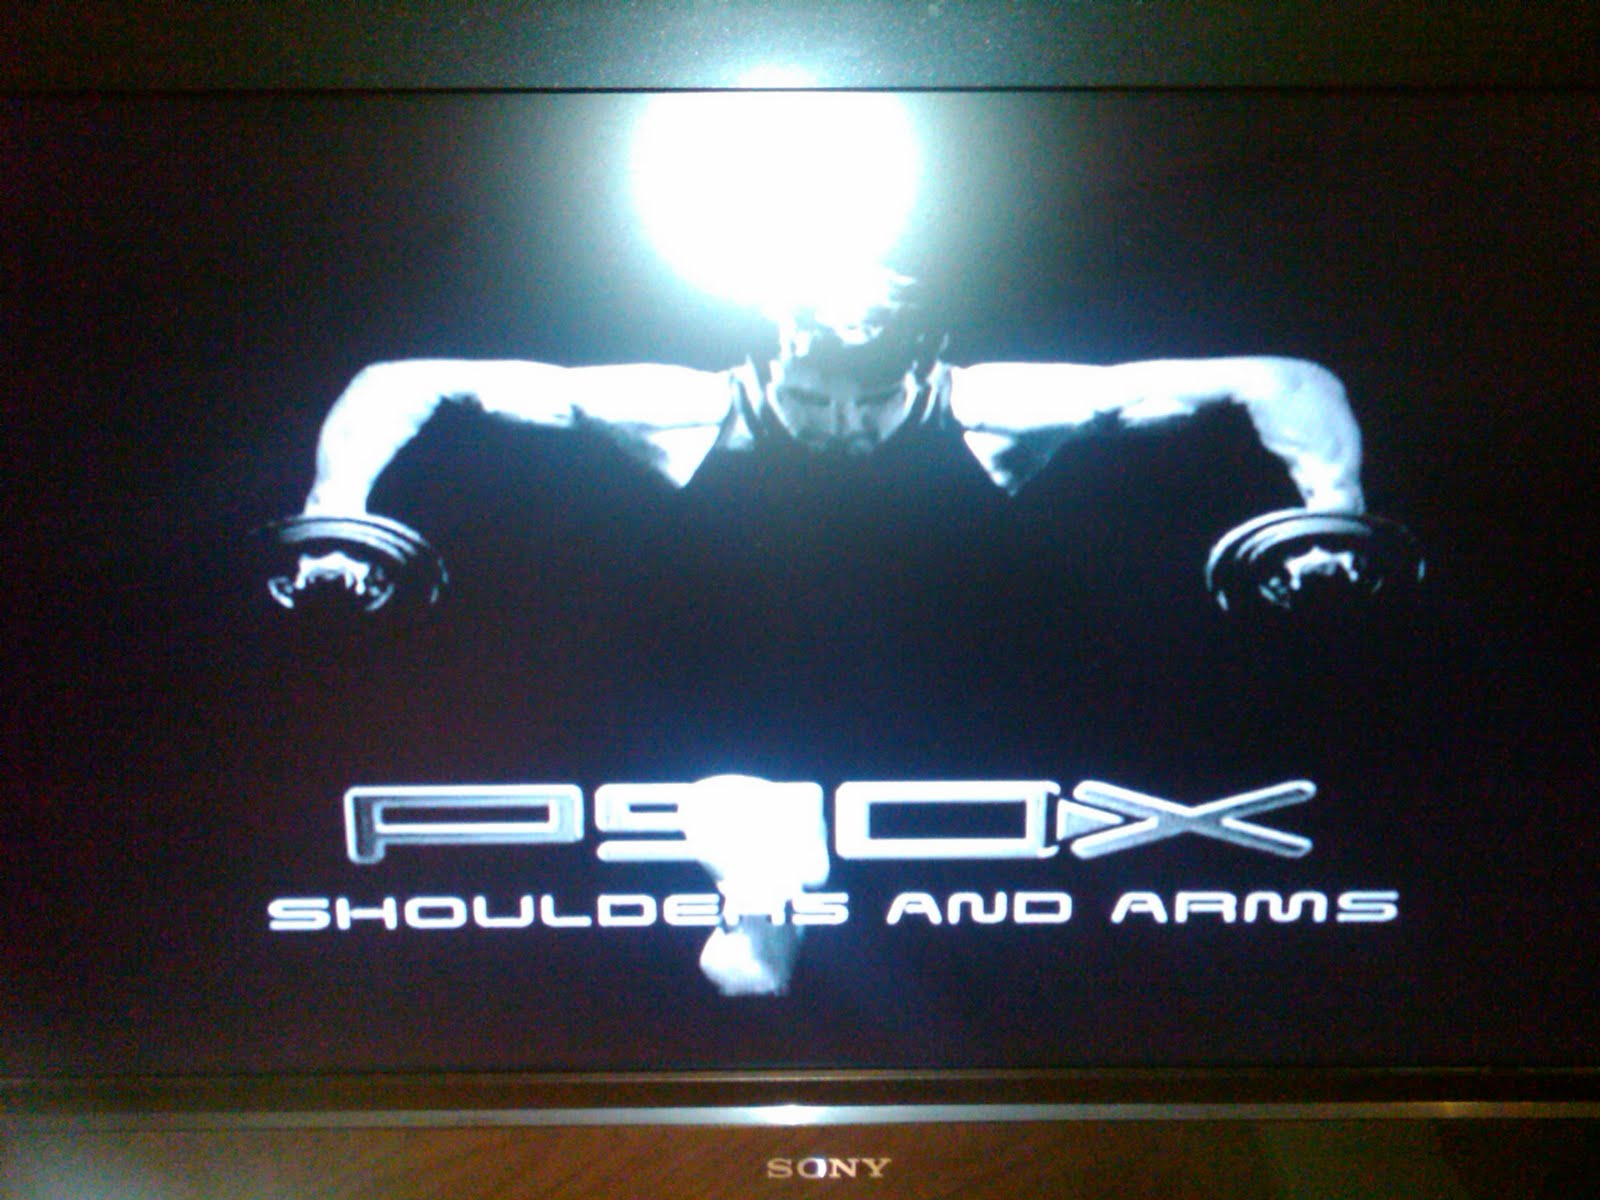 Shoulders and arms review -Day 3 - Insanity P90X Hybrid